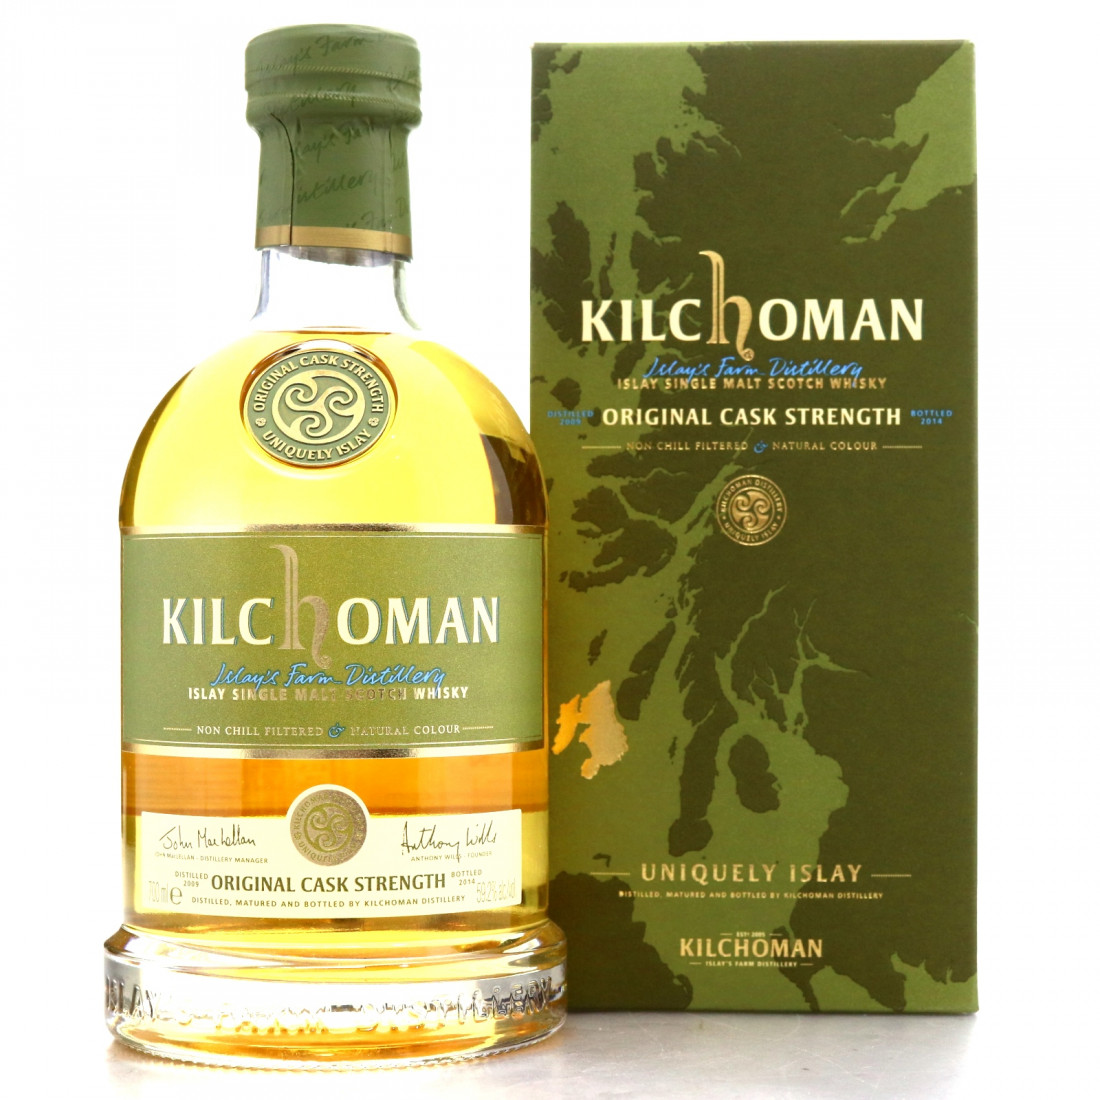 Kilchoman 2009 Original Cask Strength